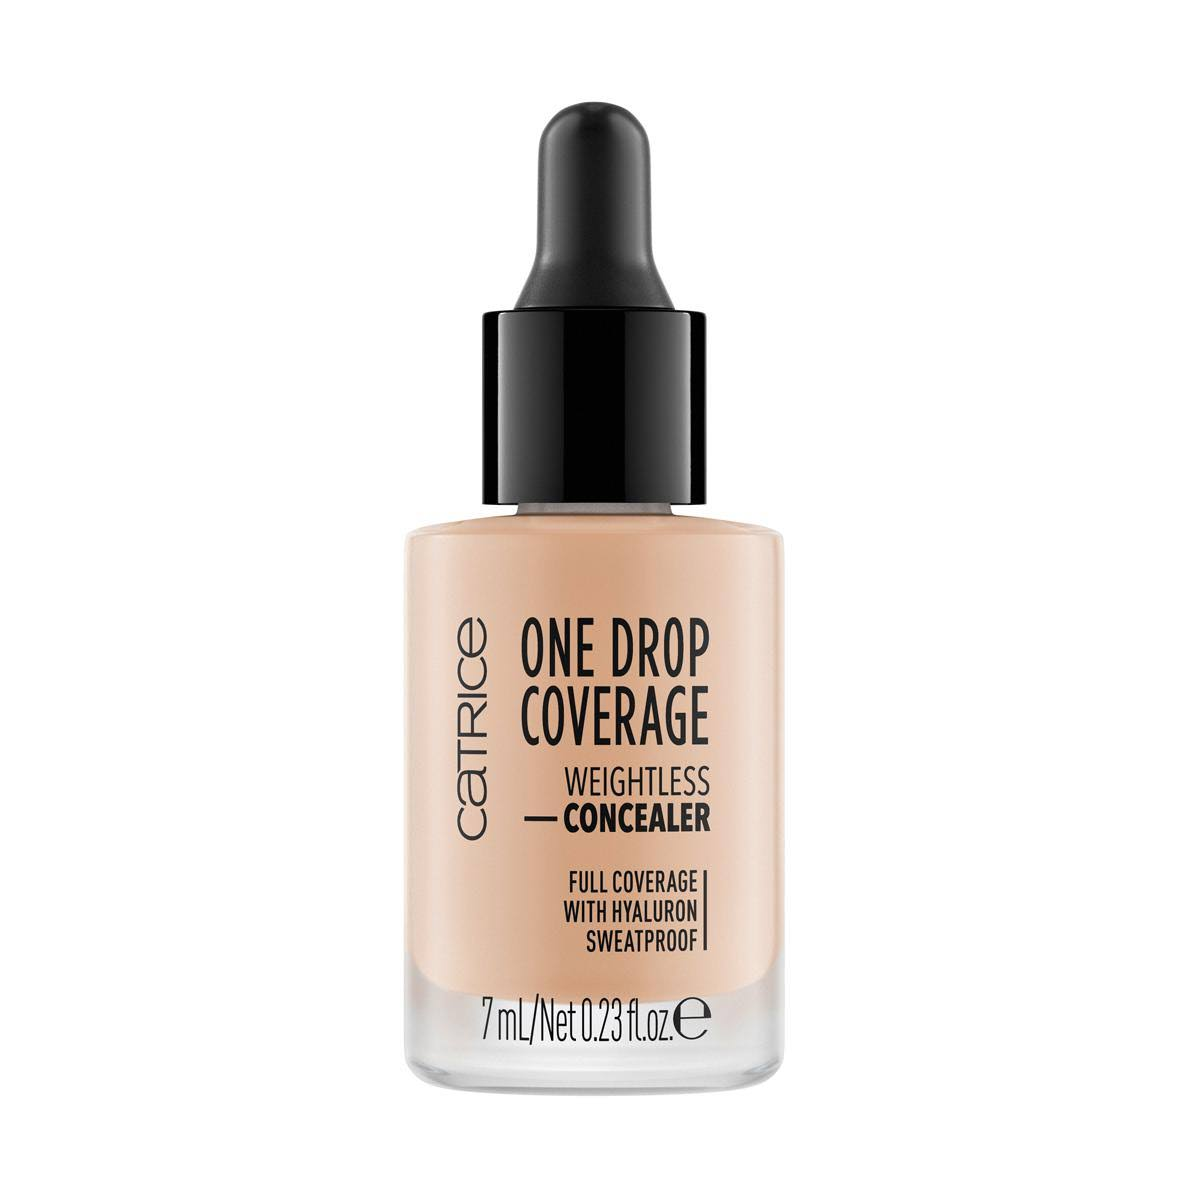 Catrice One Drop Coverage Weightless Concealer - 010 Light Beige, 7ml